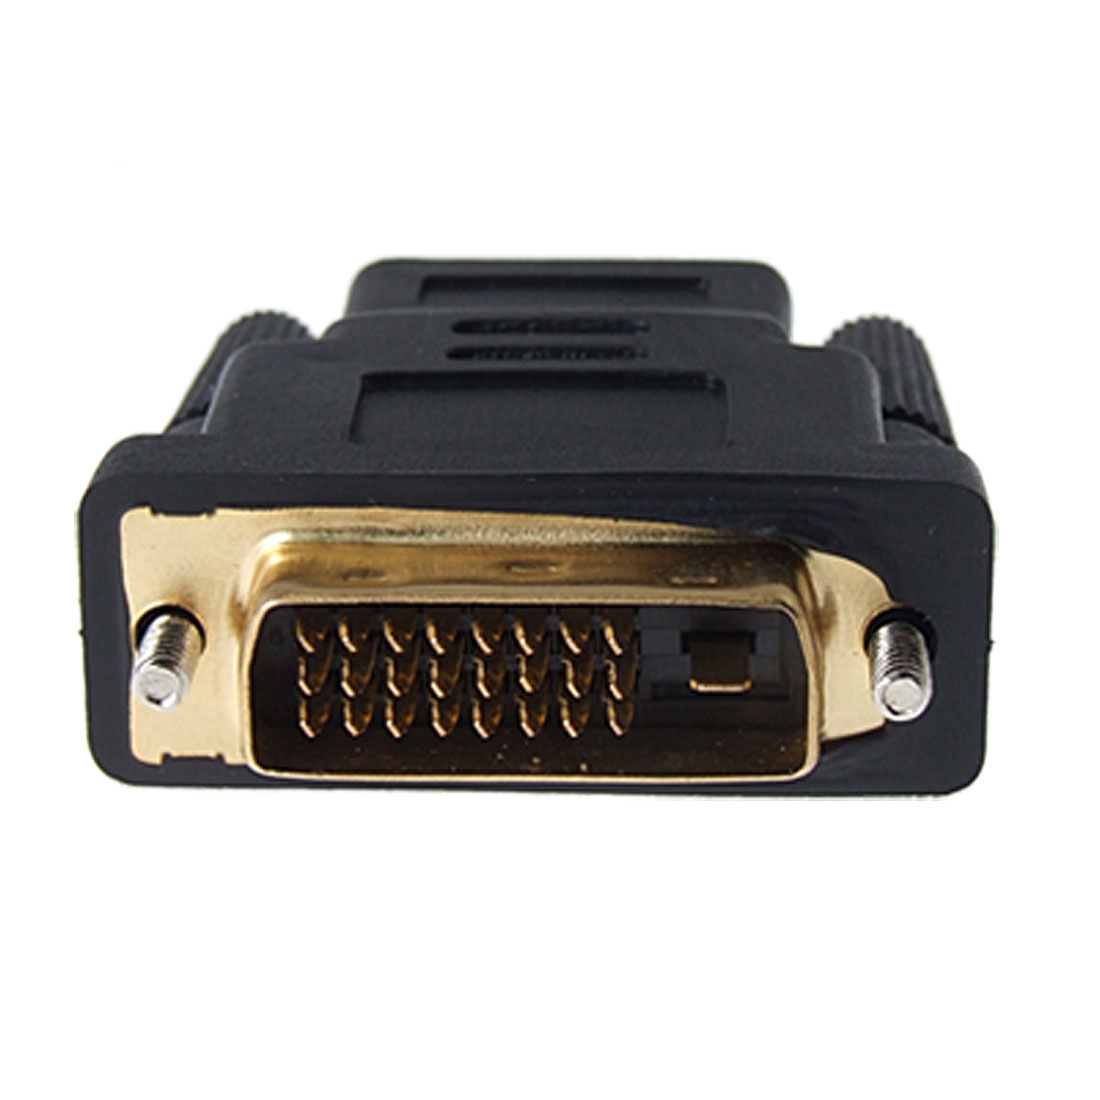 DVI-D Dual Link Male to HDMI Female Adaptor